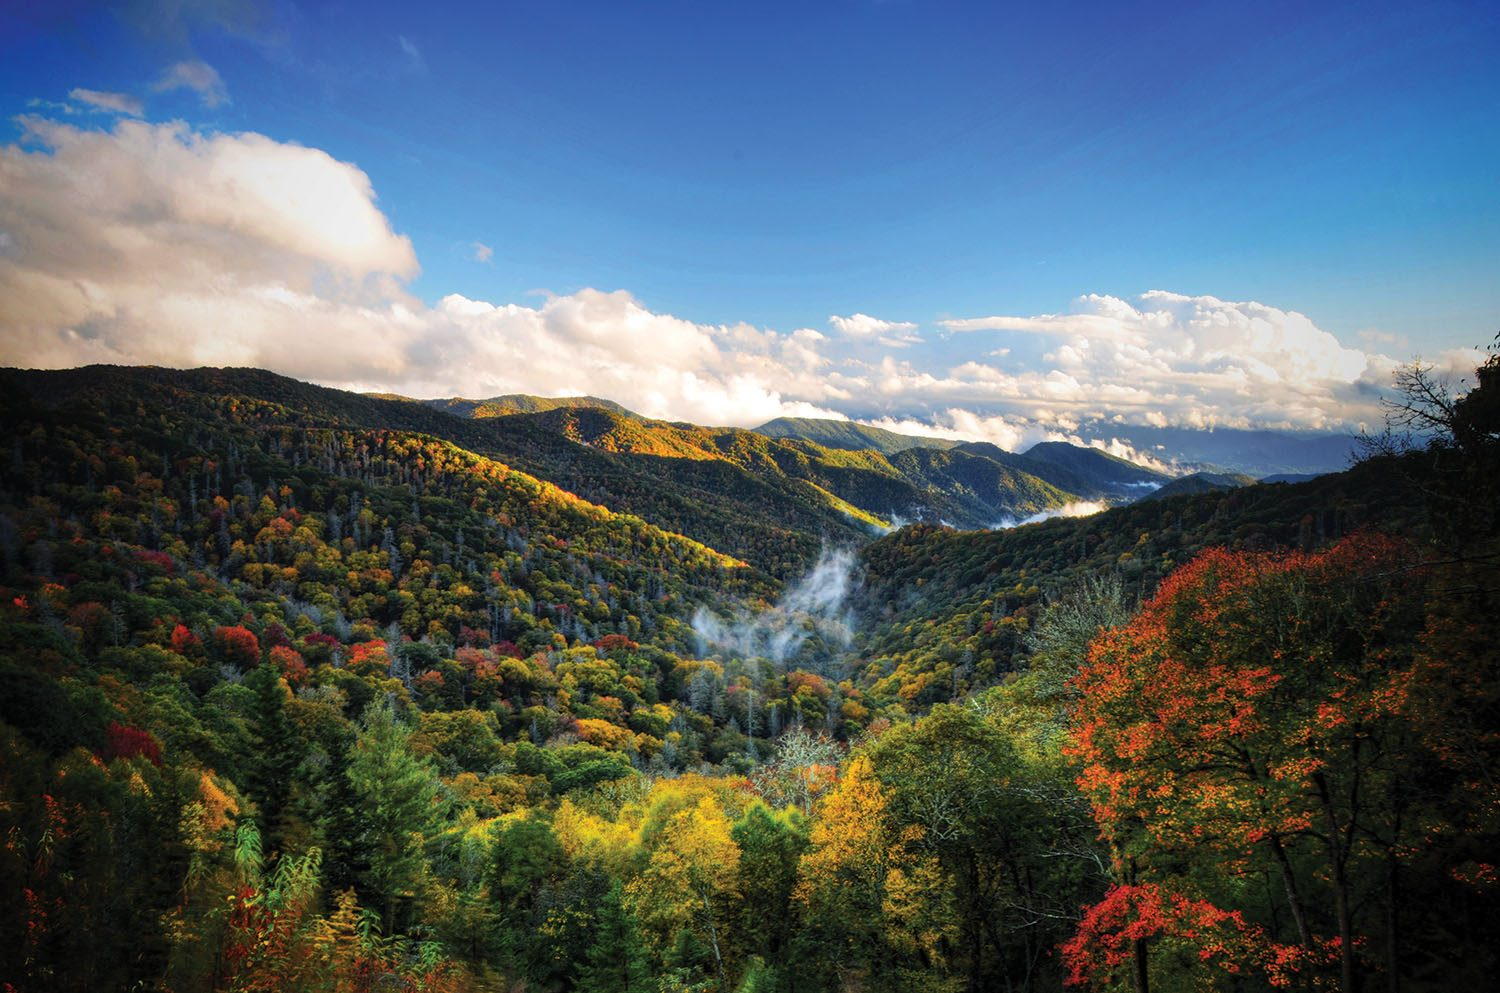 Fall Smoky Mountains Wallpaper Scenic Drives Waterfalls Forest Heritage Whitewater